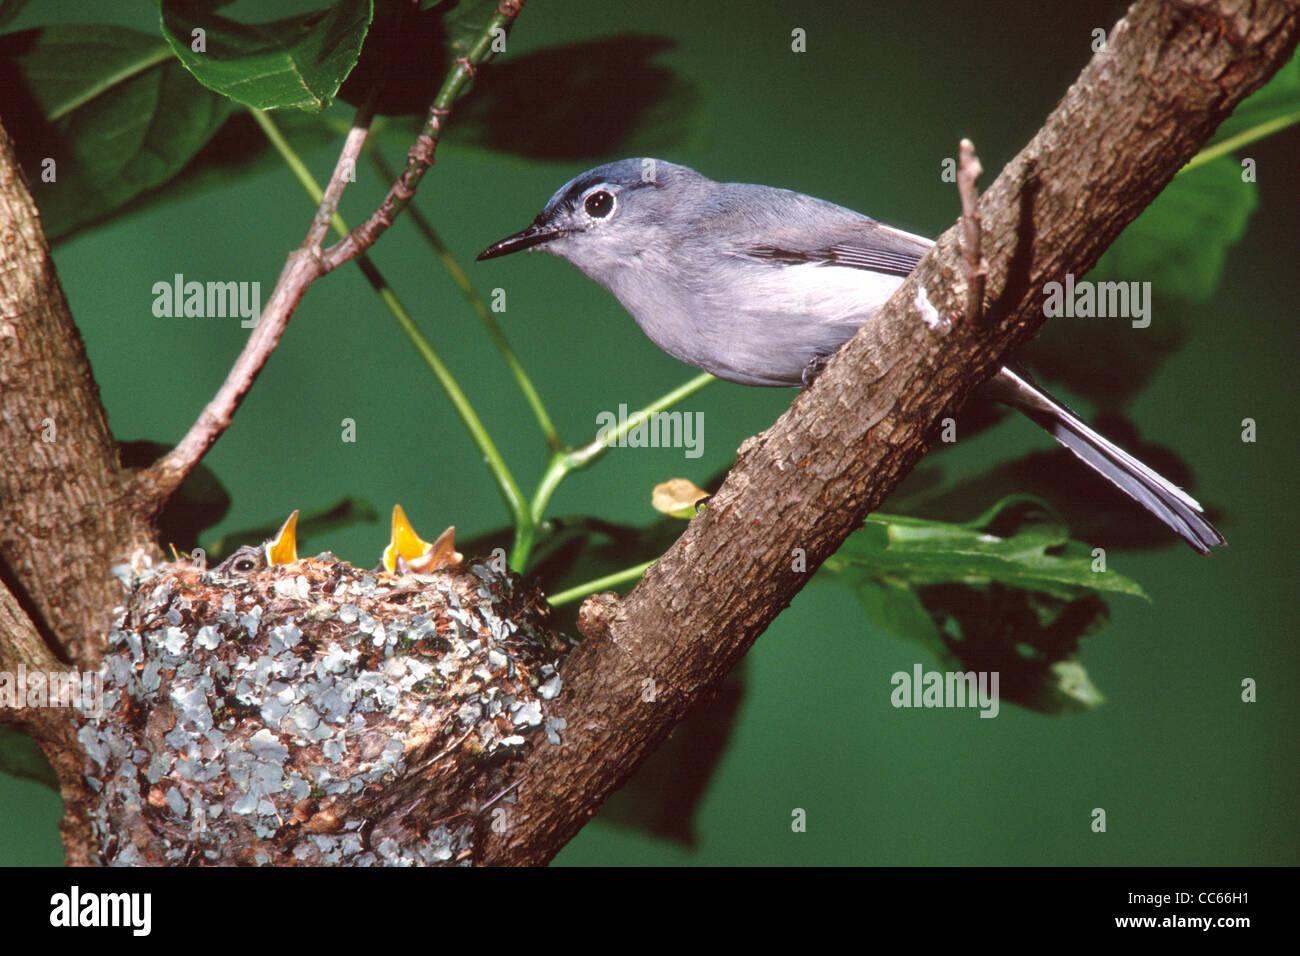 Blue-gray Gnatcatcher at Nest with Nestlings - Stock Image